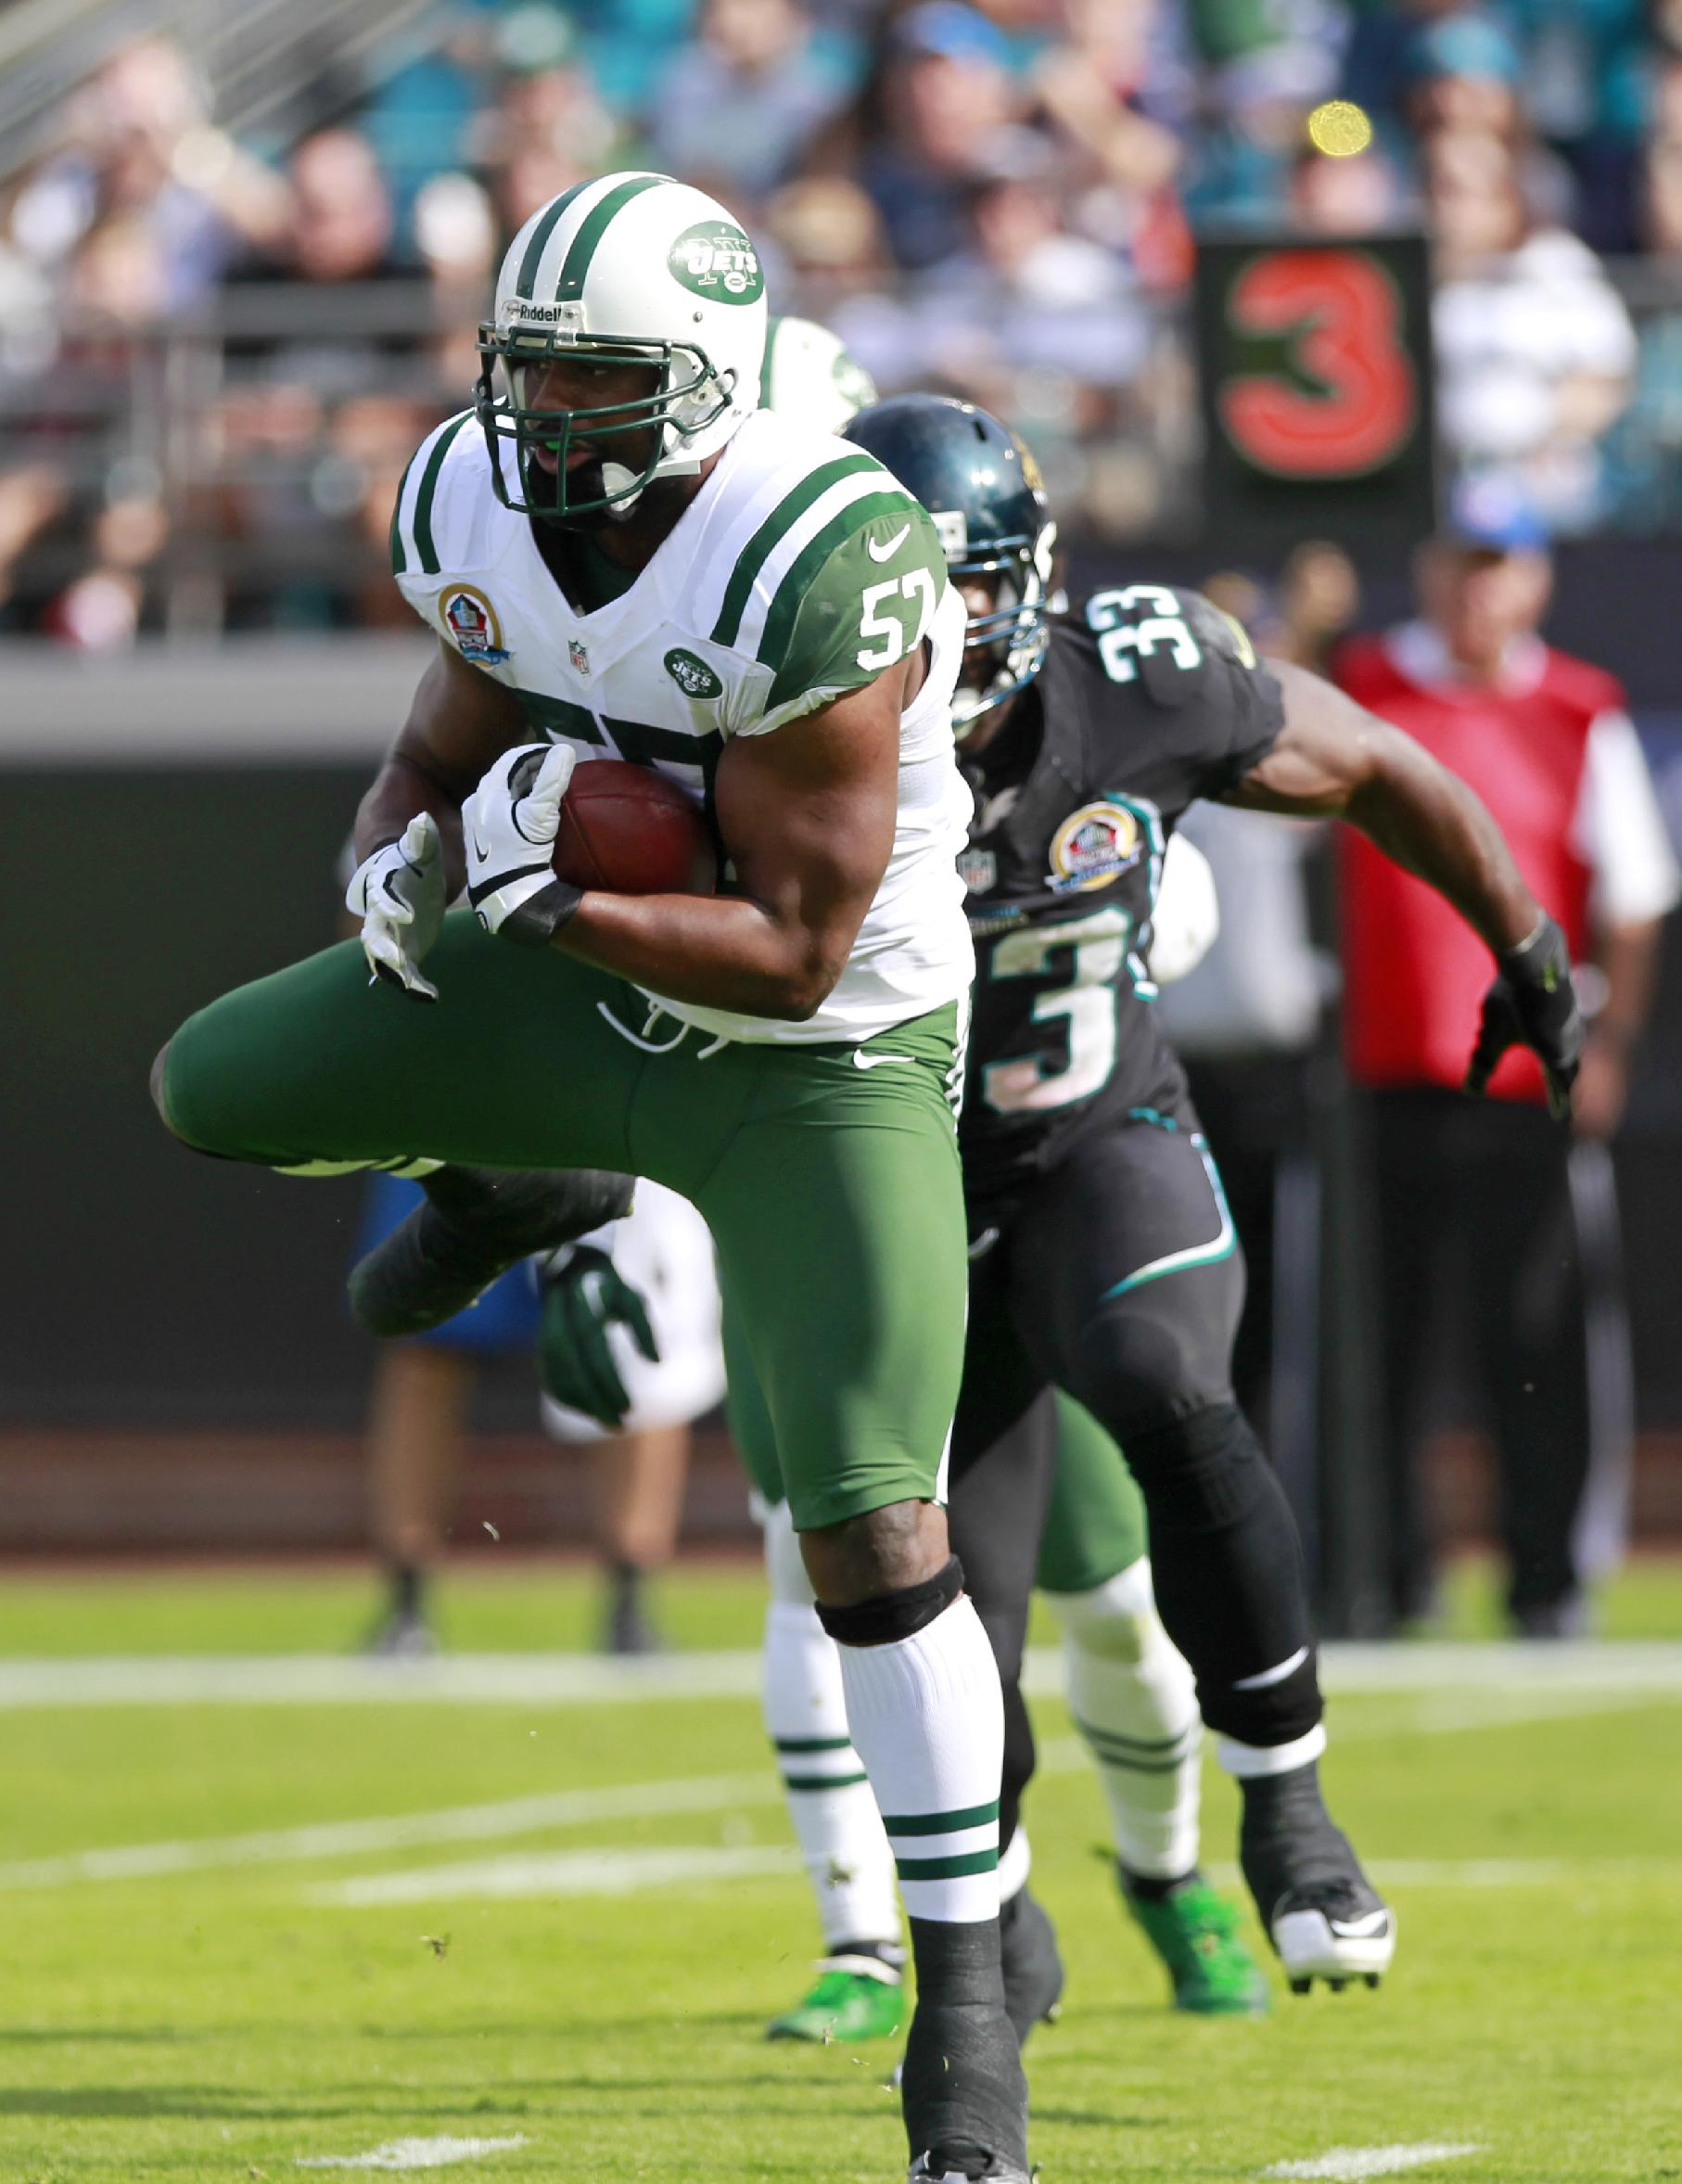 In this Dec. 9, 2012, file photo, New York Jets inside linebacker Bart Scott, left, intercepts a pass in front of Jacksonville Jaguars fullback Greg B. Jones (33) during the first half of an NFL football game in Jacksonville, Fla. Scott has made a seamless transition from the football field to the TV studio as one of the four hosts of CBS Sports Network's